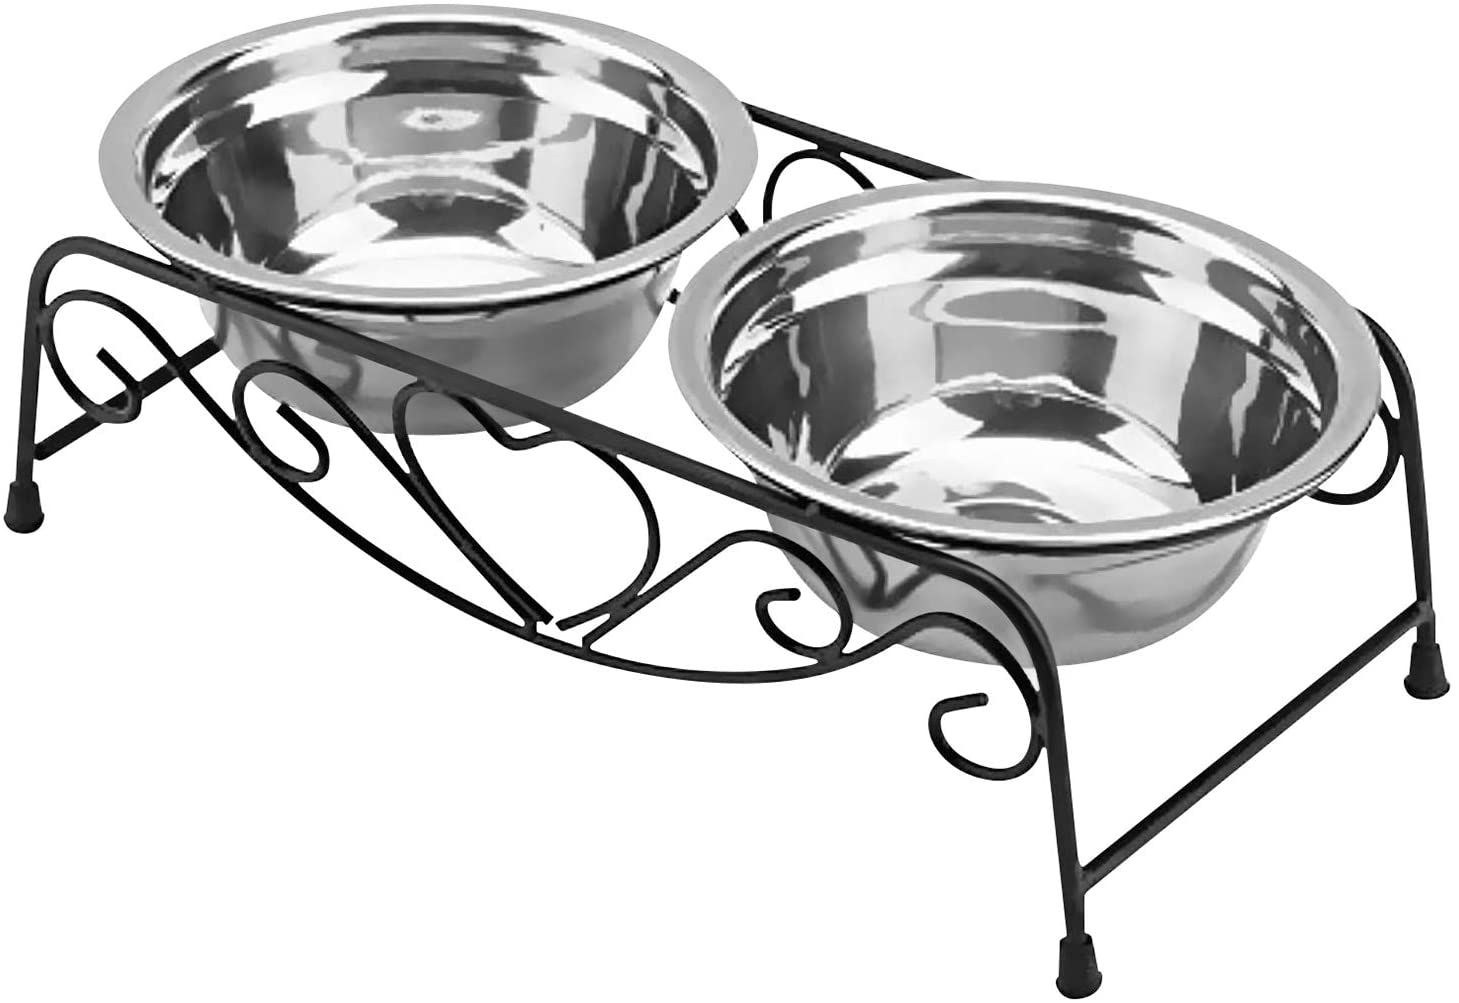 Stainless Steel Raised Pet Bowl wtih Double Dog Cat Food and Water Feeder Dish Retro Iron Elevated Stand